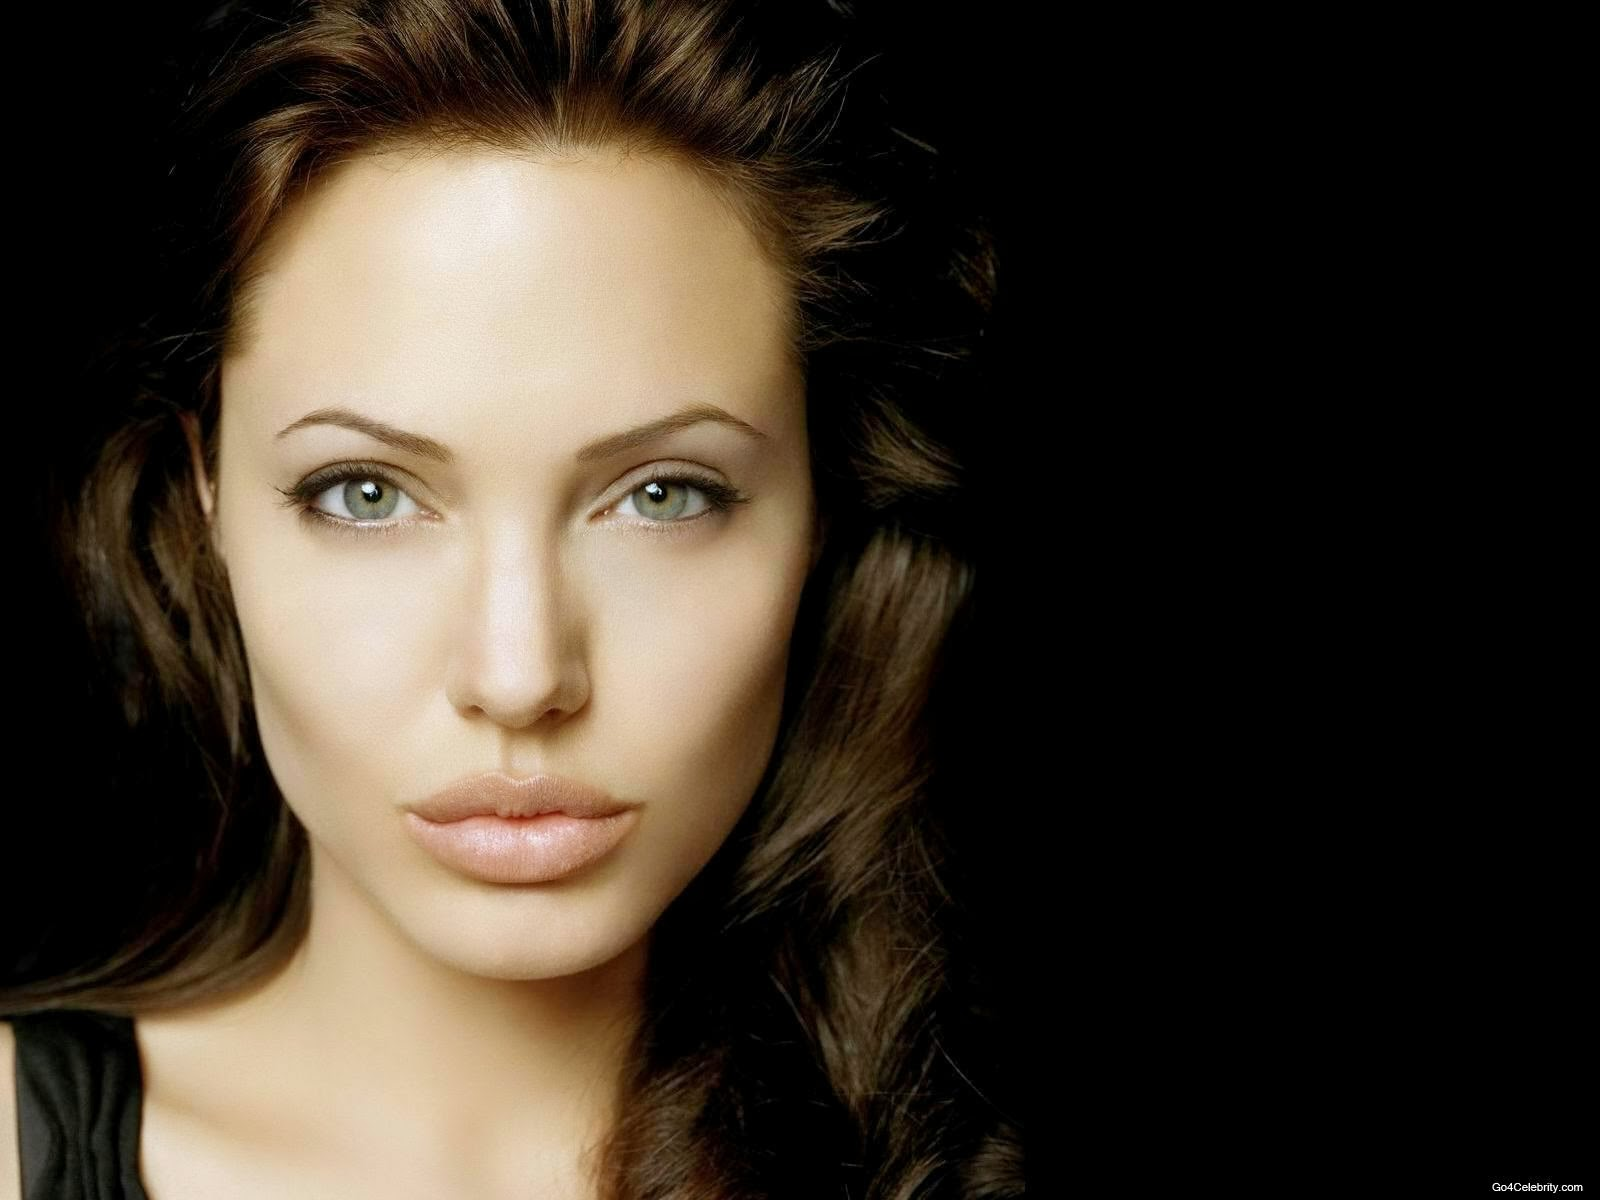 angelina jolie hd wallpaper images pics   hd wallpapers blog